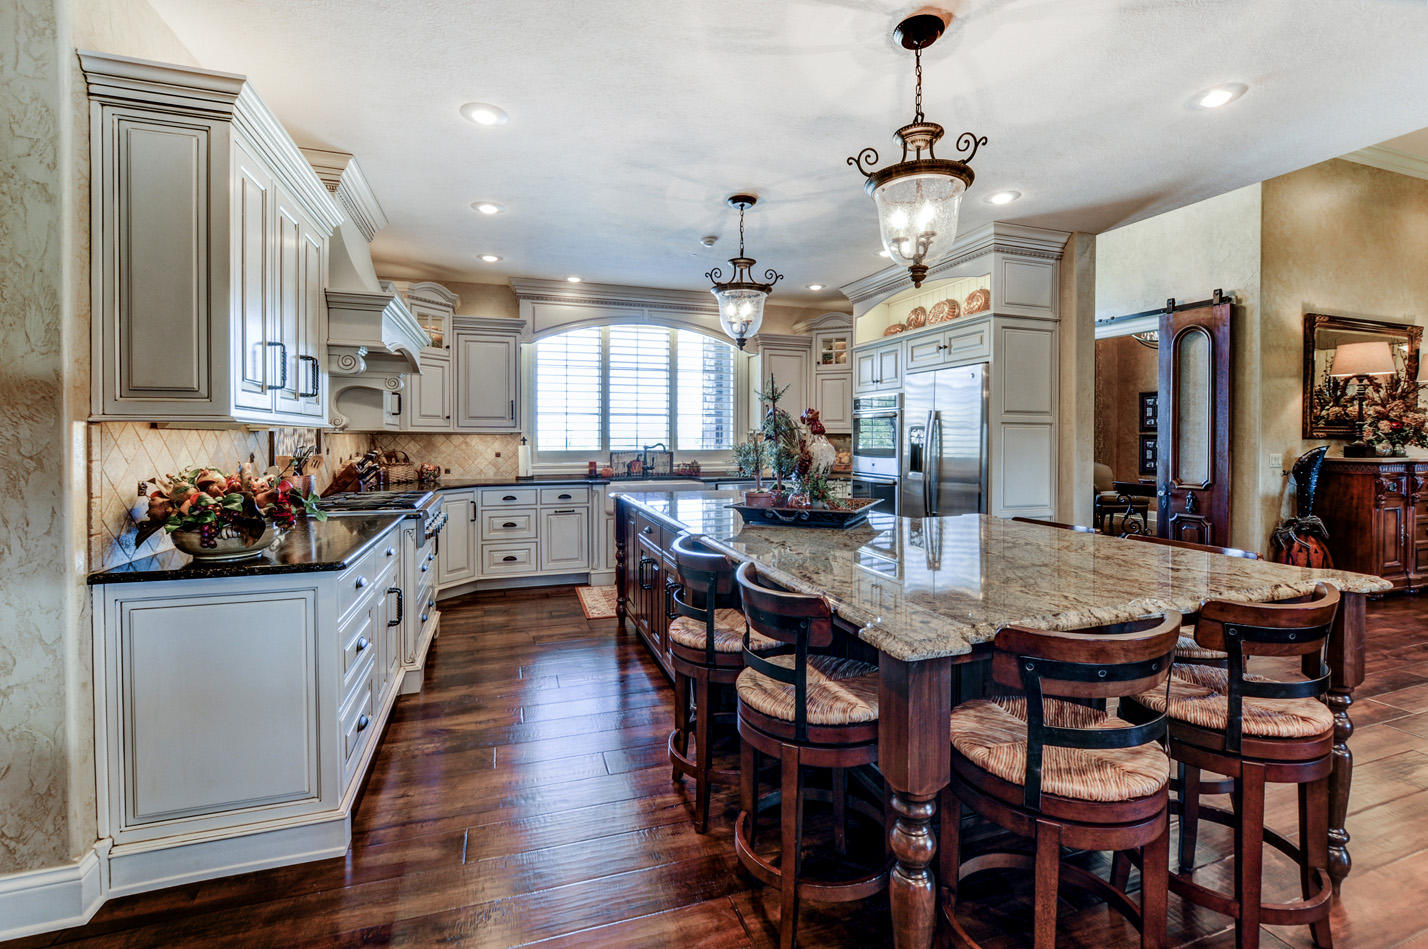 built-by-brett-custom-home-springfield-mo-13735-lawrence-2100-018.jpg